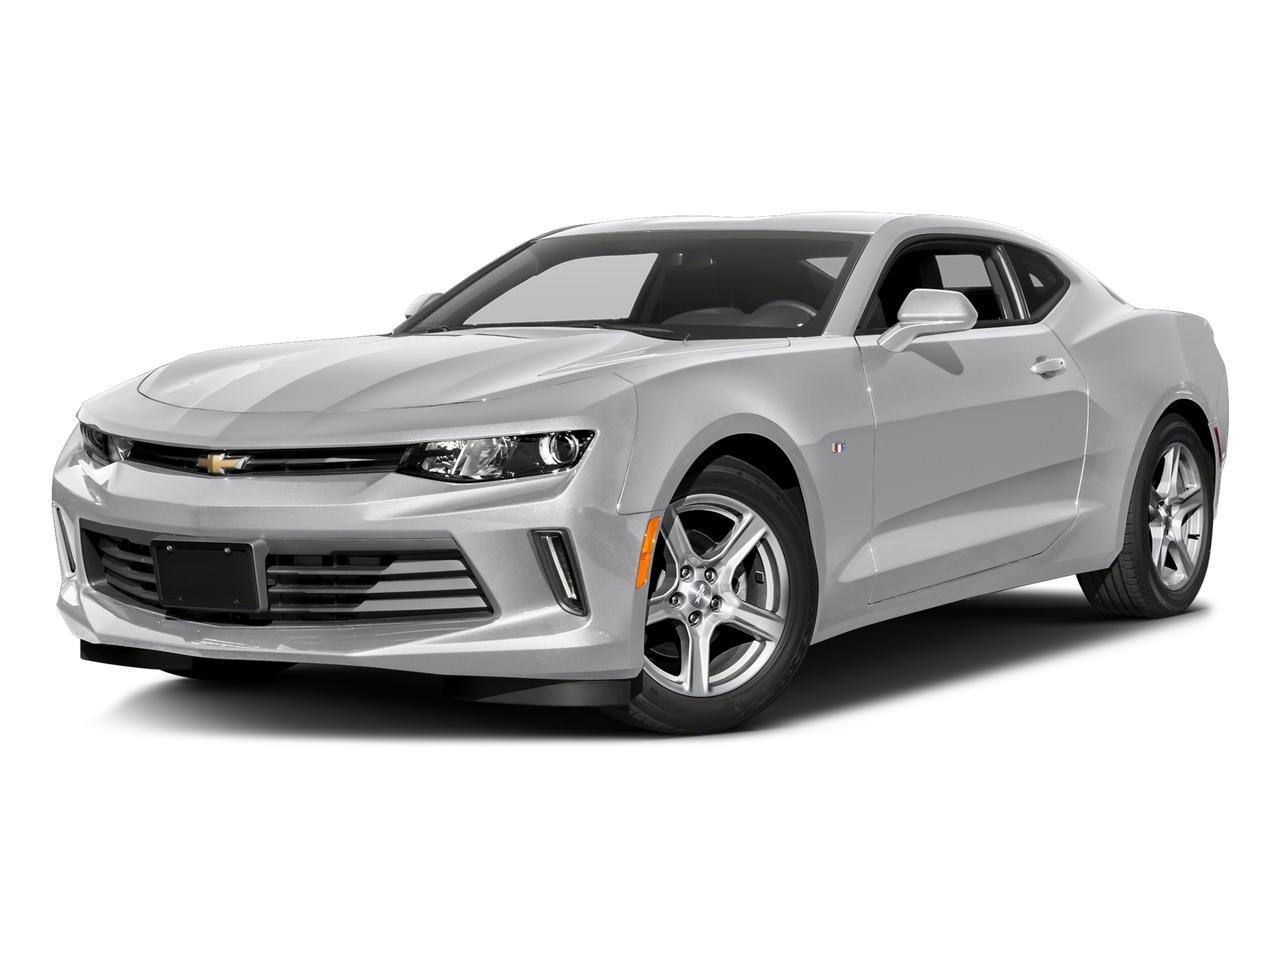 2017 Chevrolet Camaro Vehicle Photo in Lewisville, TX 75067